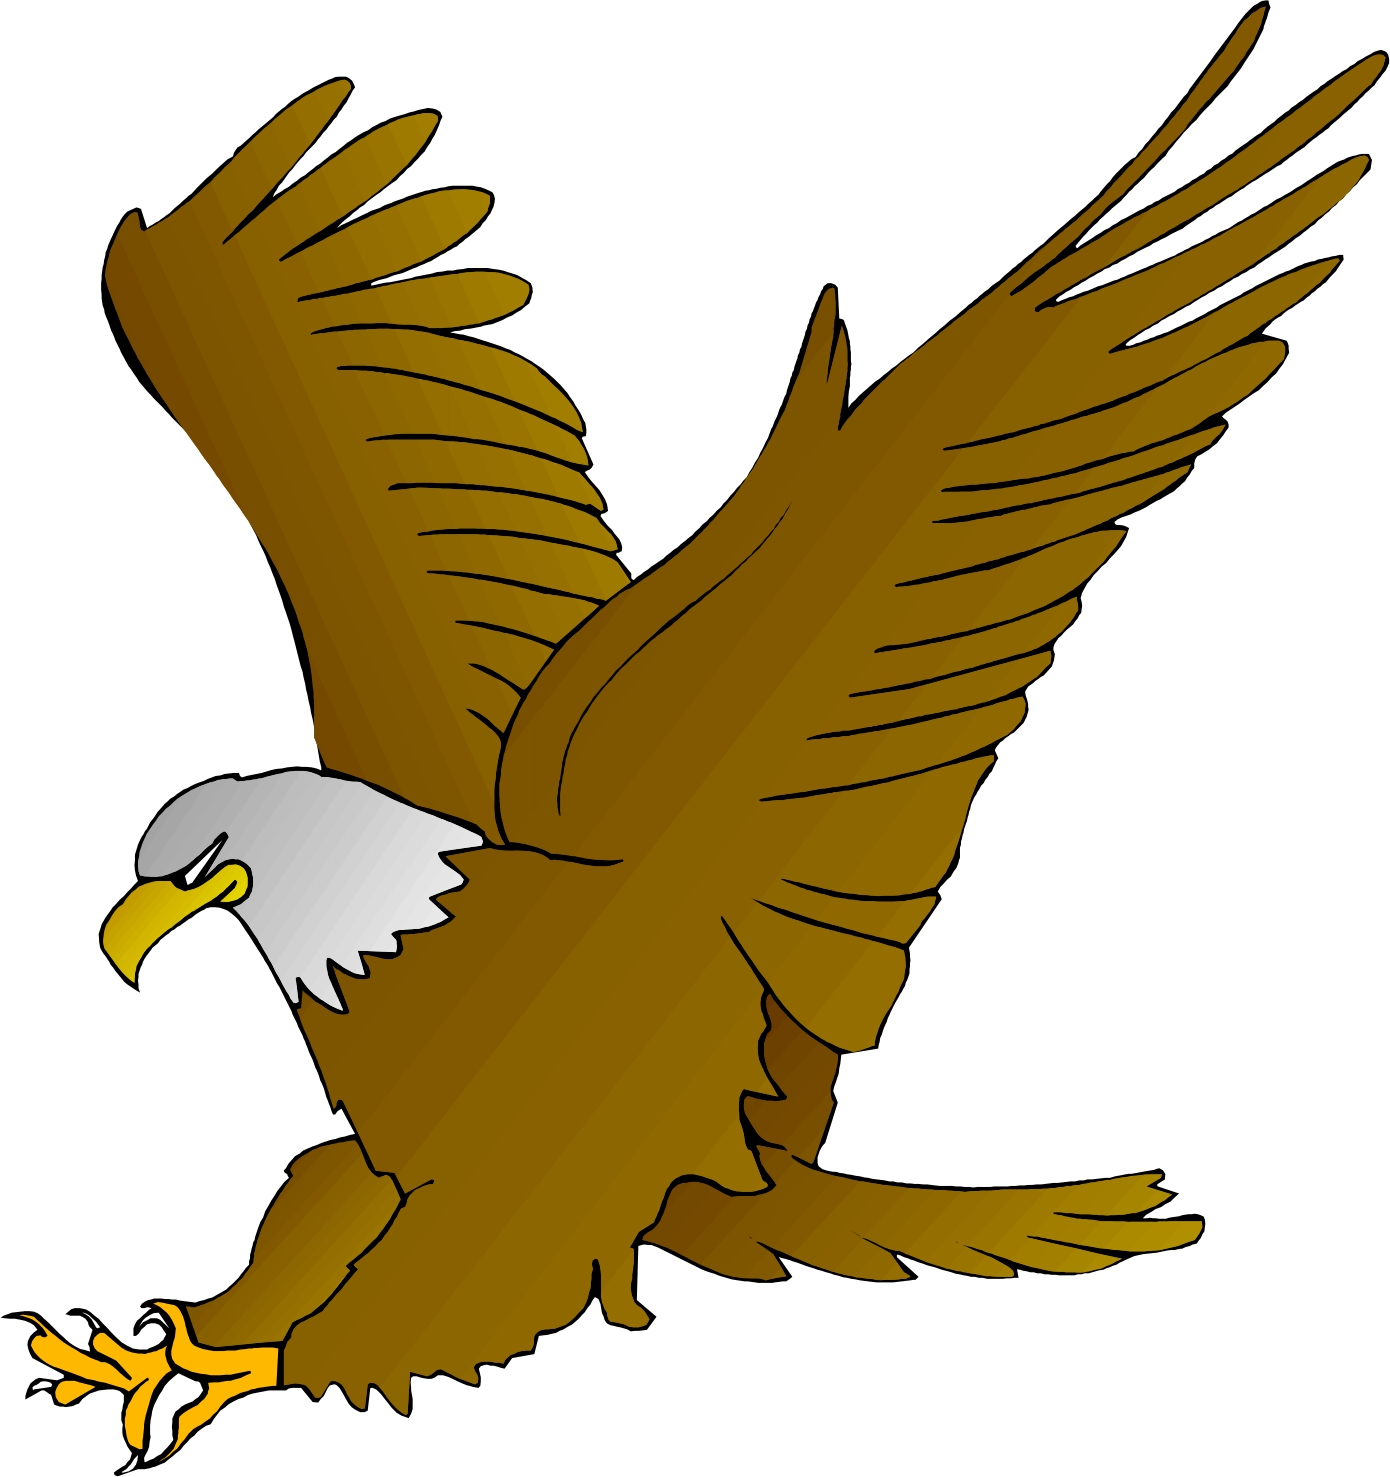 eagle wing diagram healthy plate cute clipart panda free images